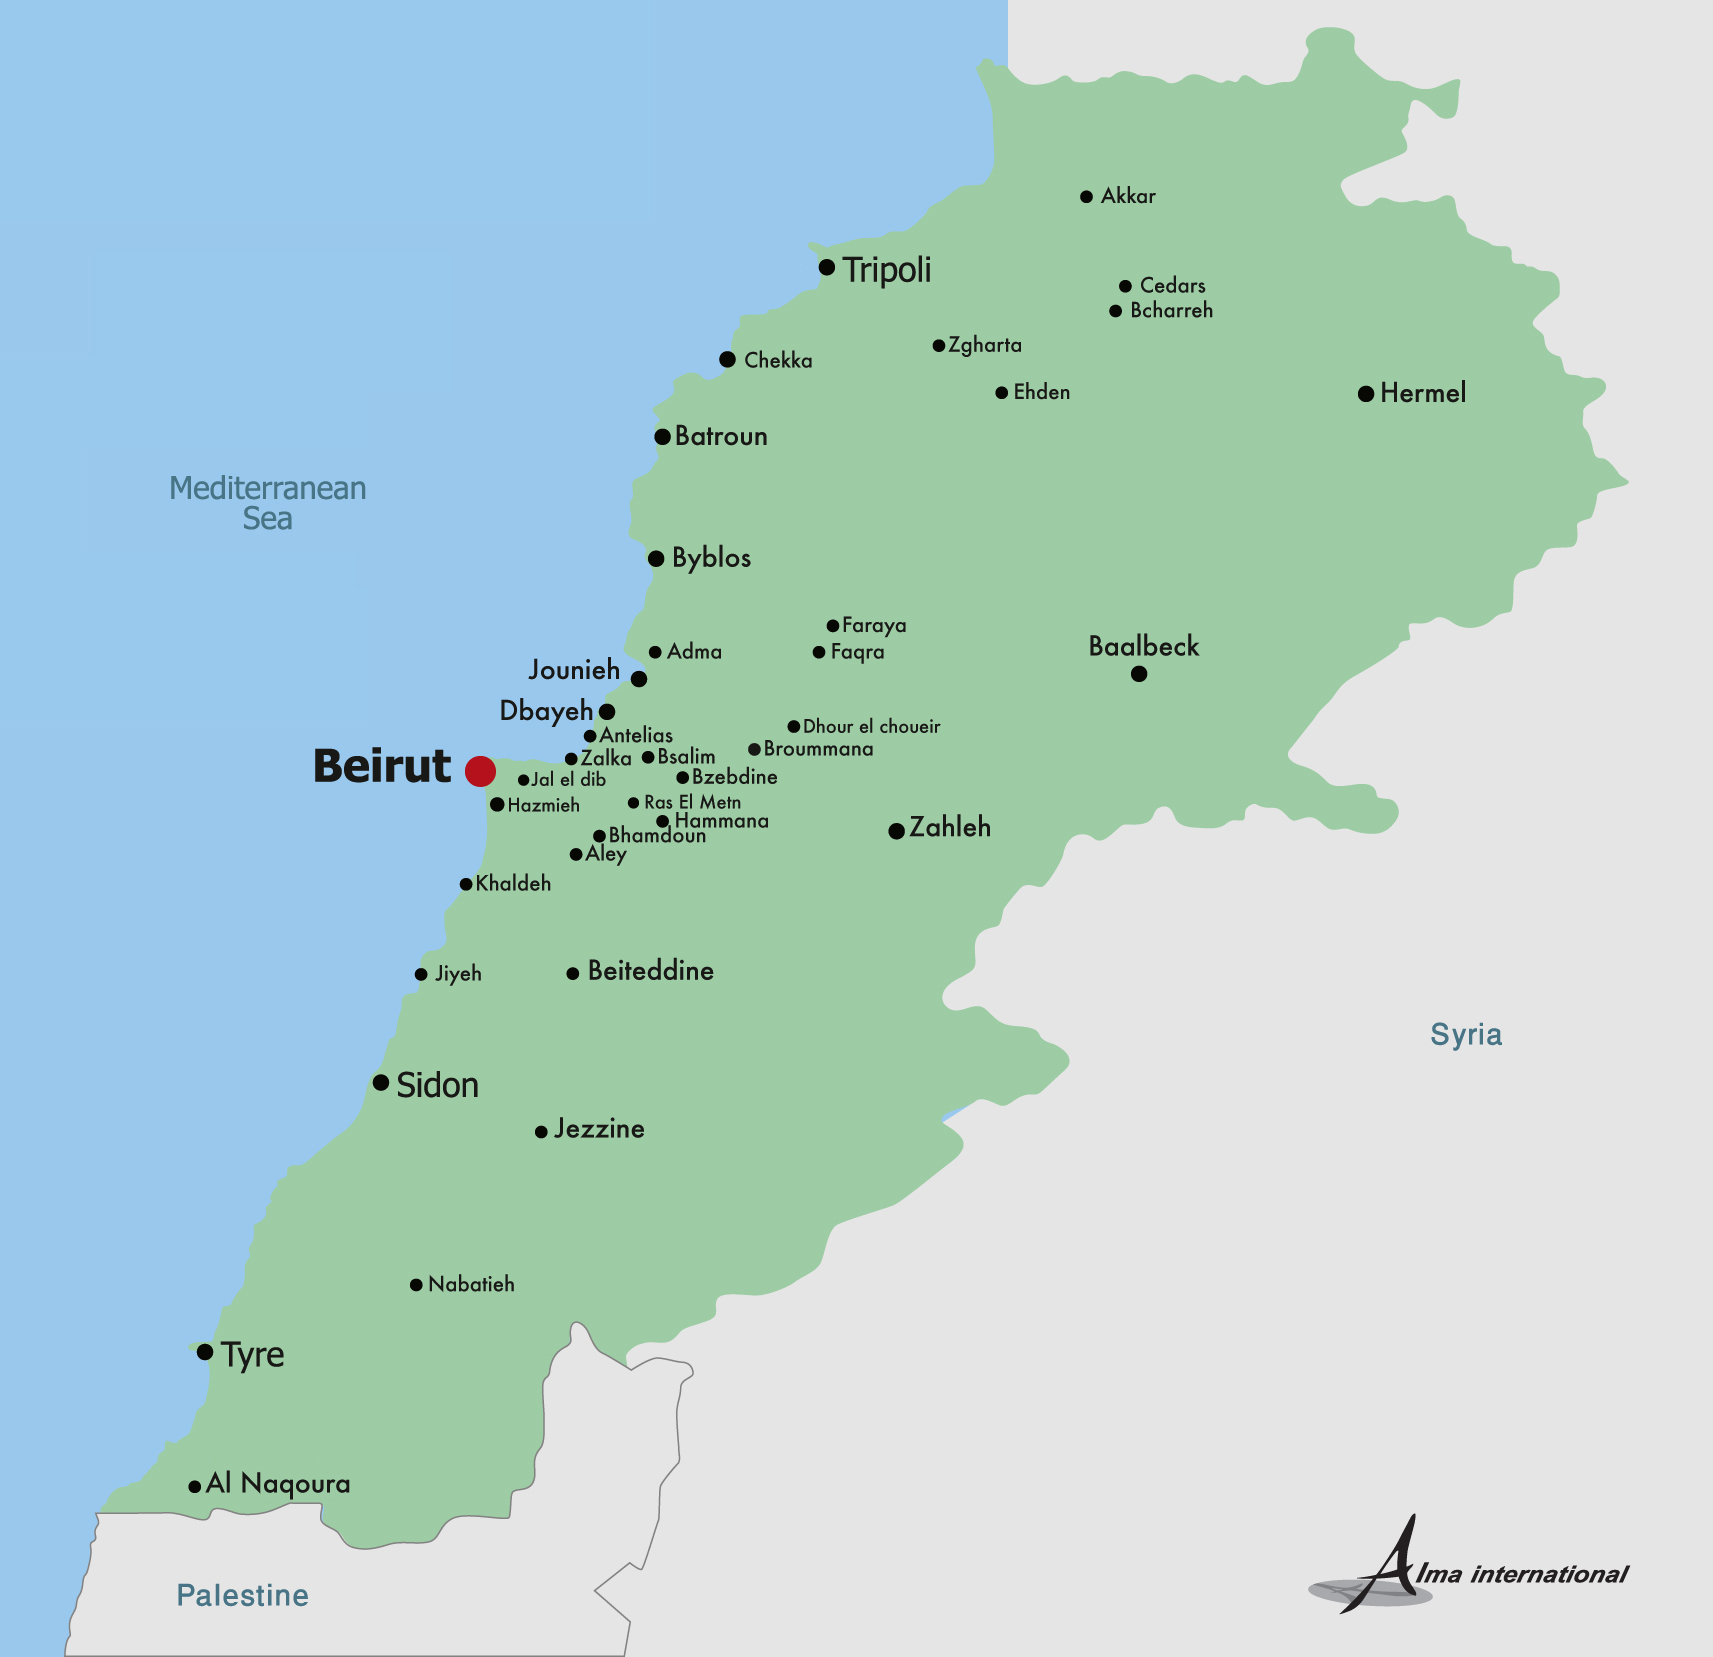 Map of Lebanon Lebanon Map